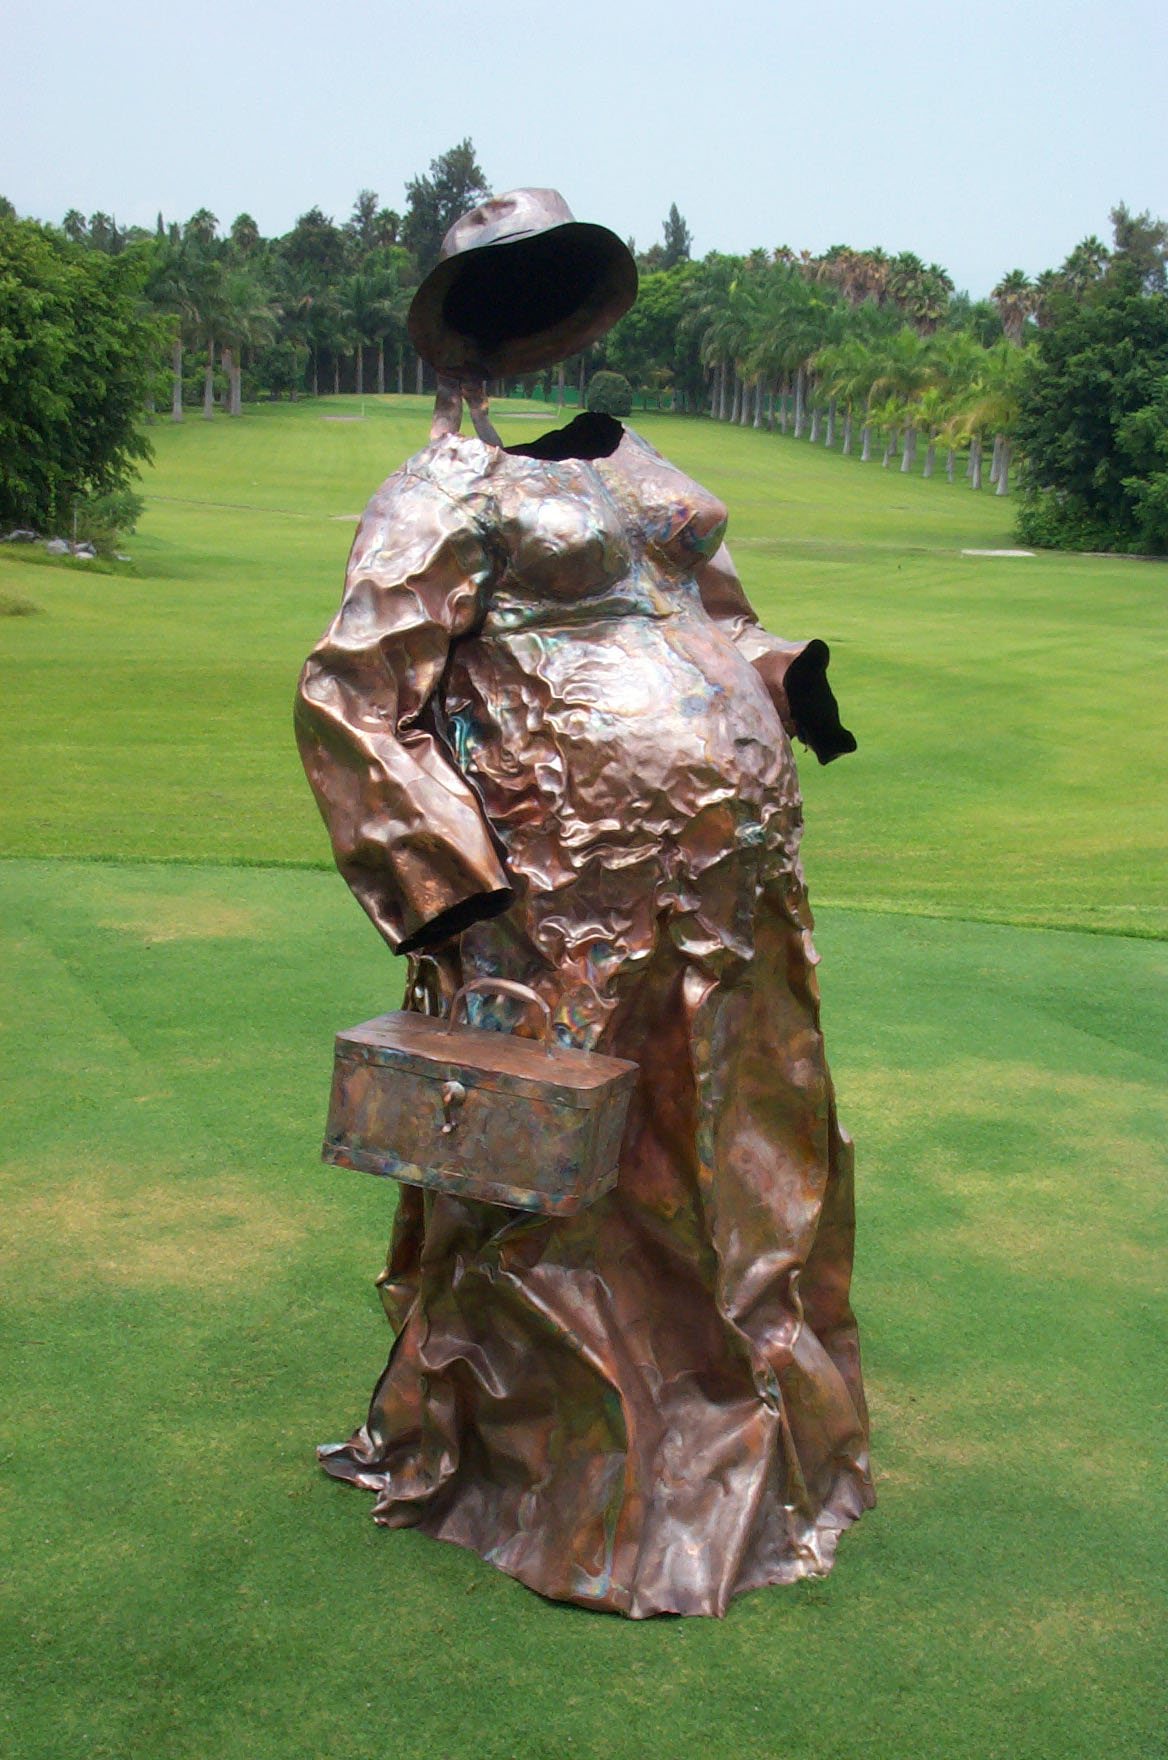 The goddess 61 x 35 x 31 in Copper sheet welding & embossing